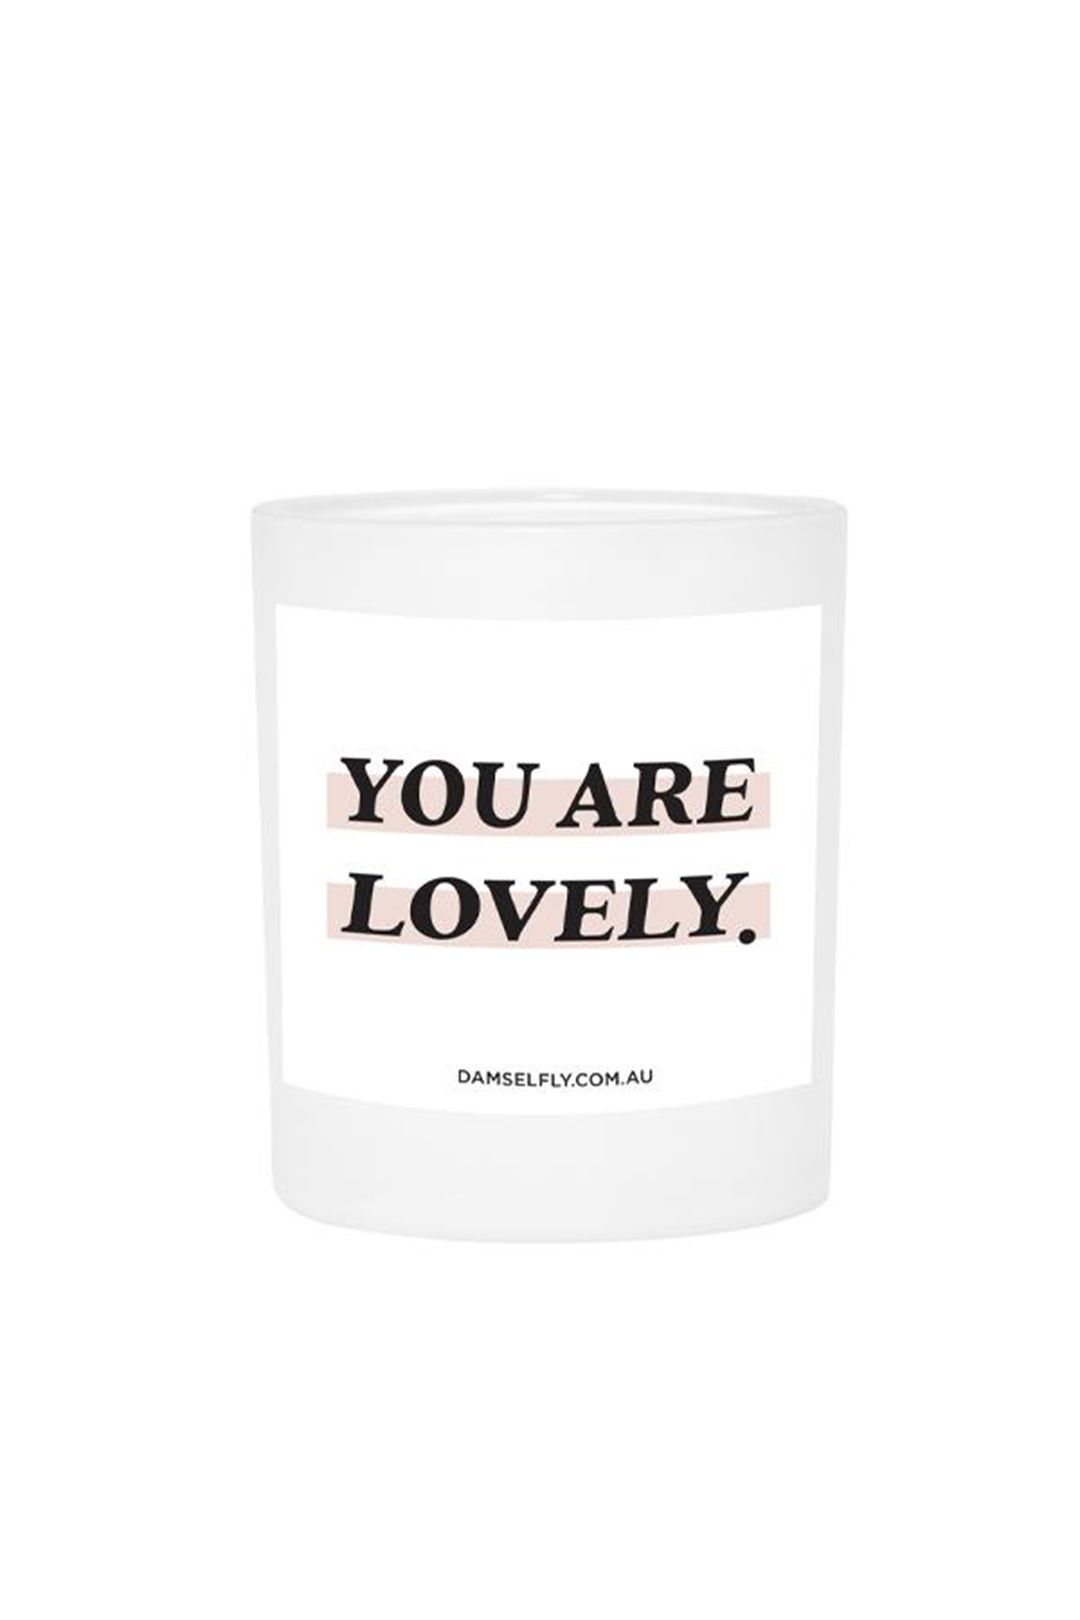 damselfly-collective-you-are-lovely-large-candle-front